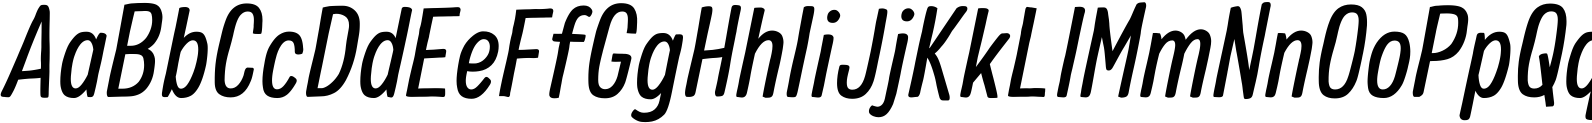 Colby Condensed Regular Italic Font